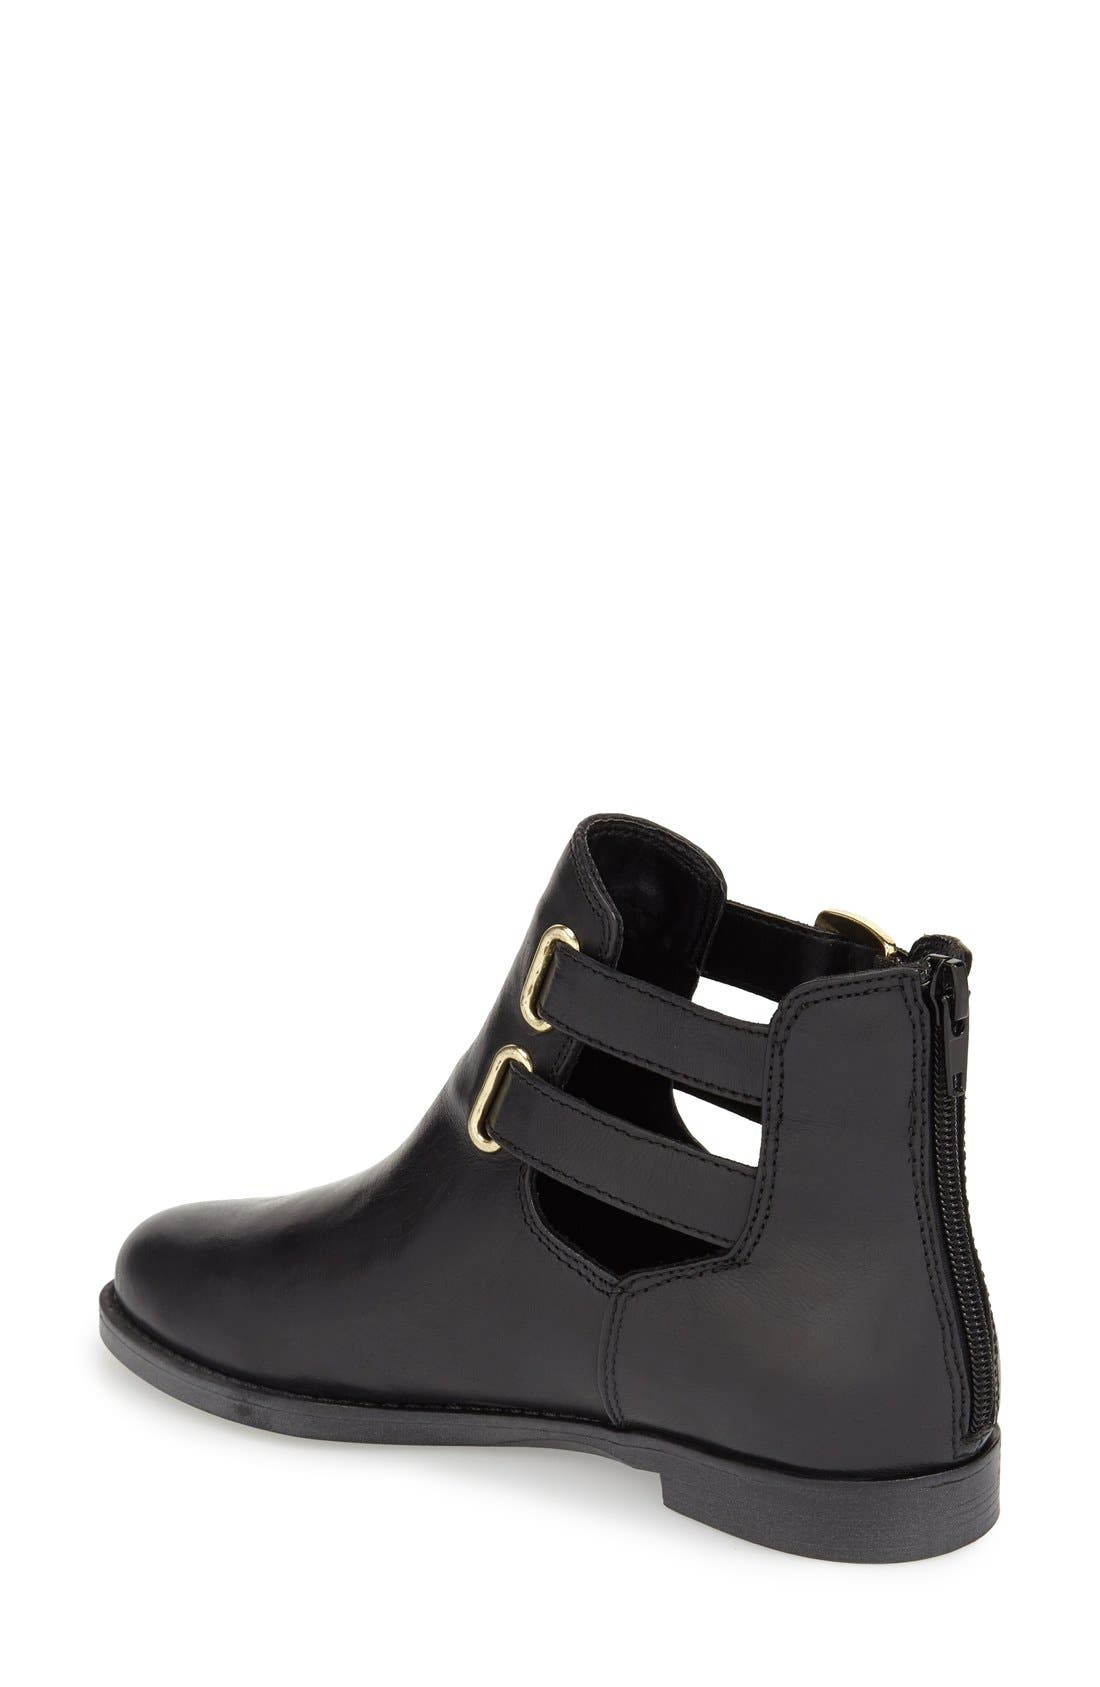 'Ramona' Double Buckle Bootie,                             Alternate thumbnail 2, color,                             001